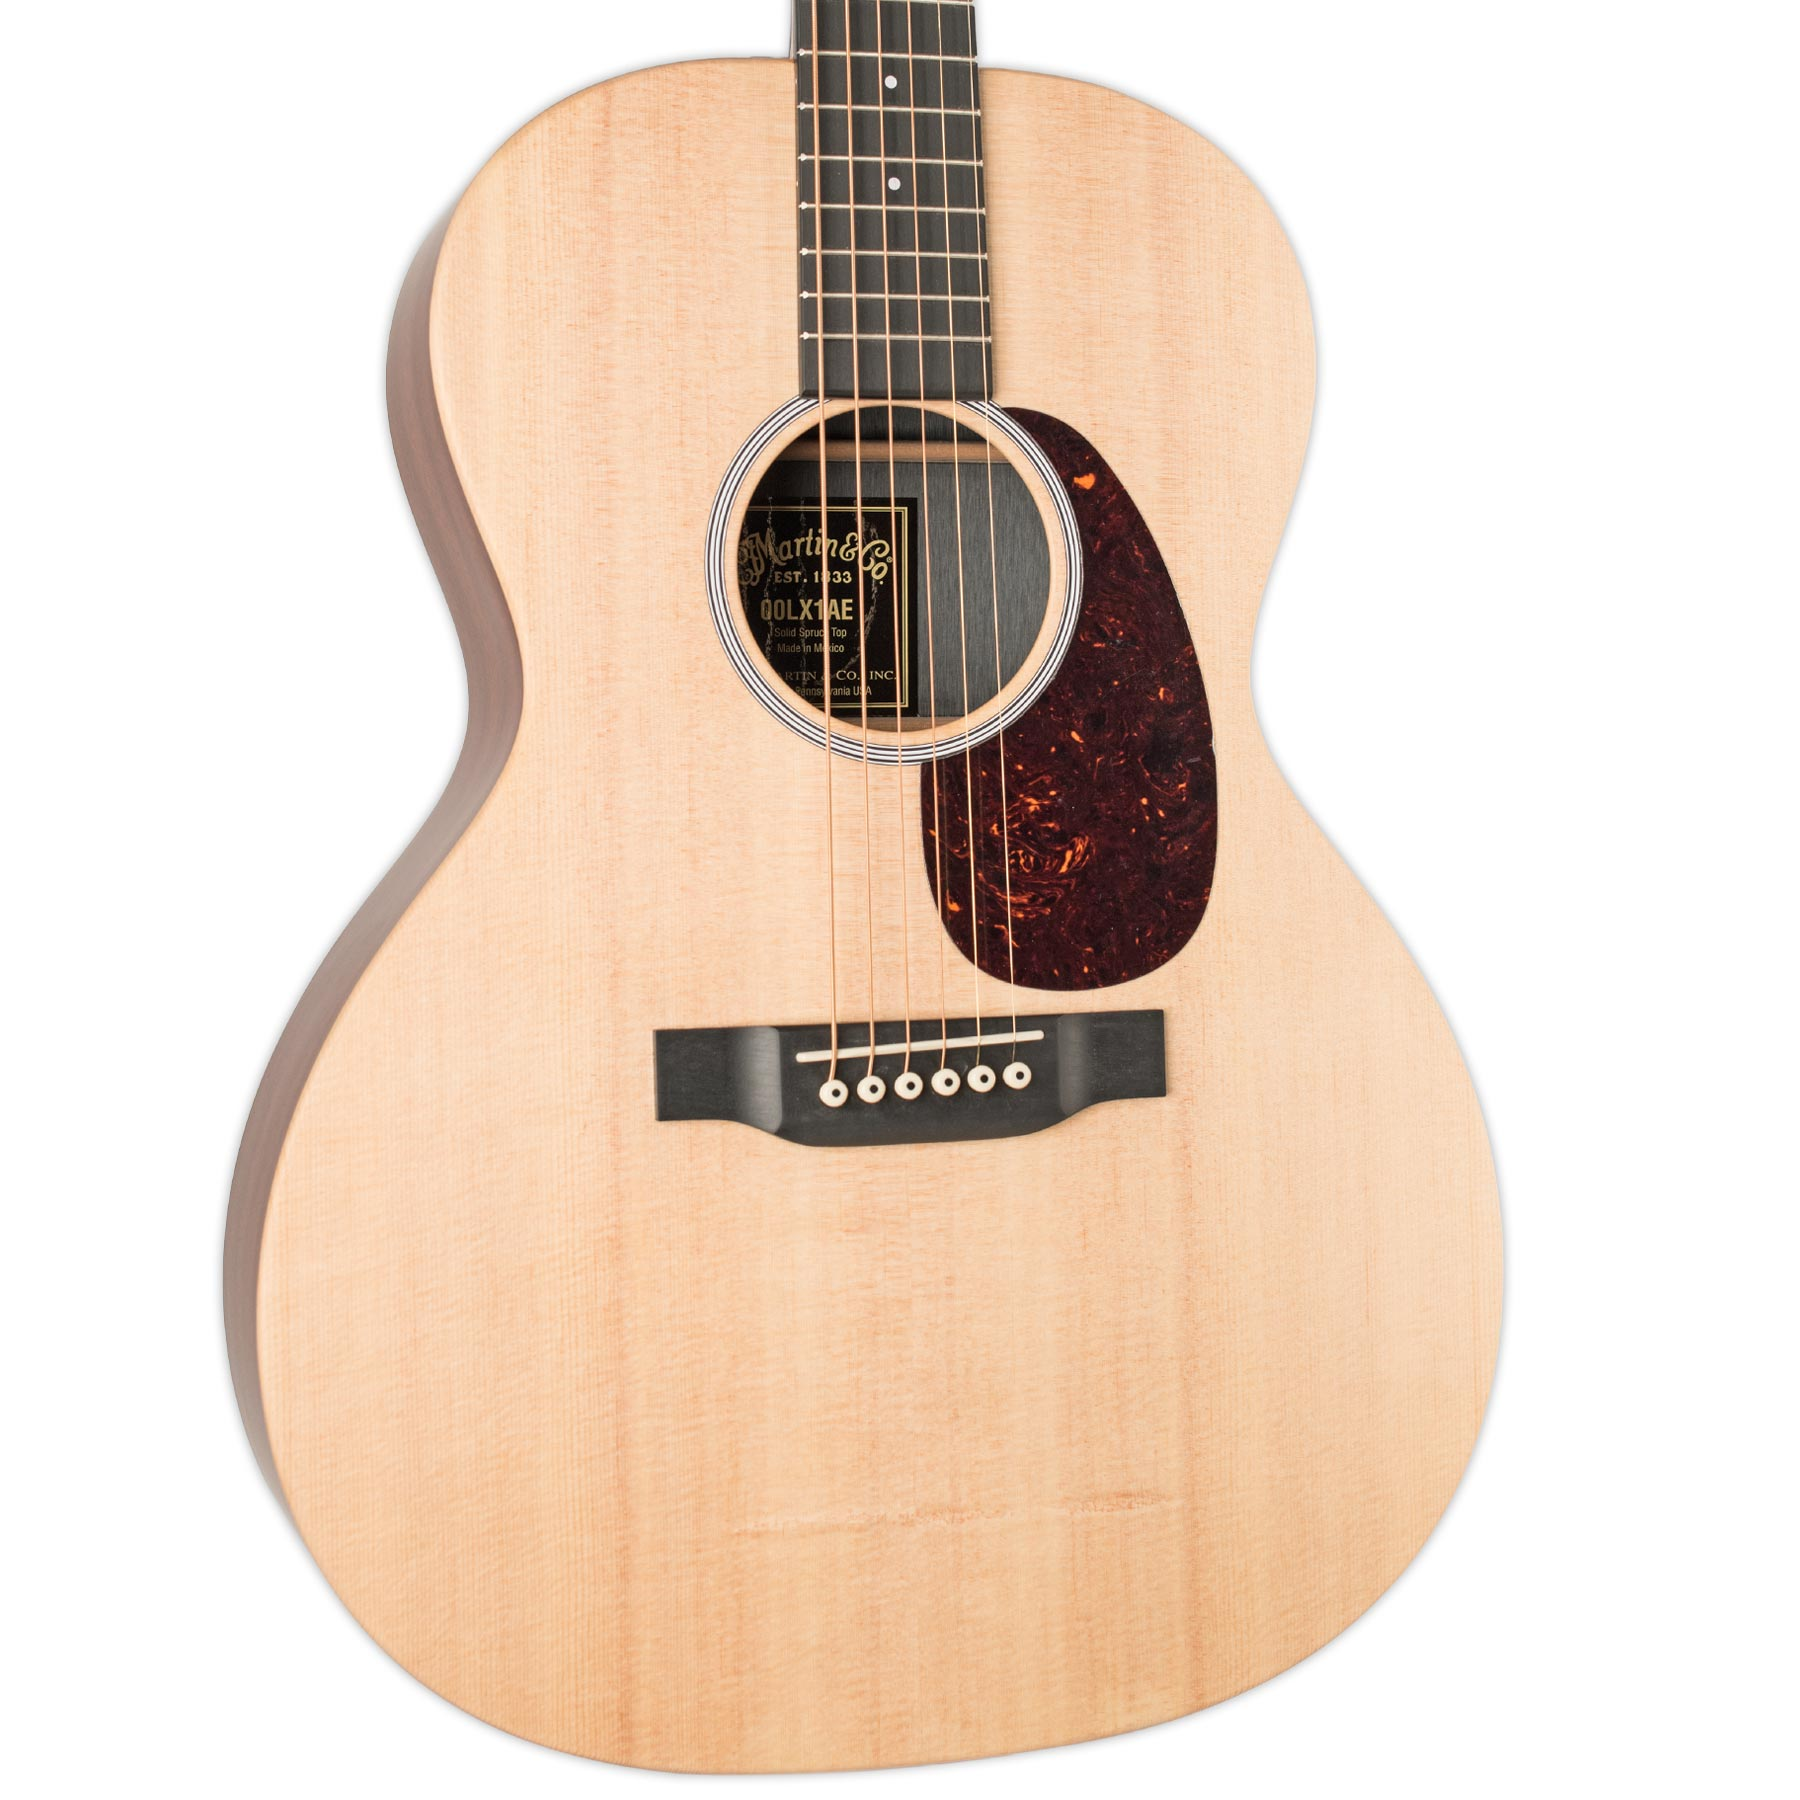 MARTIN 00LX1AE ACOUSTIC GUITAR (00-14 FRET SLOPE SHOULDER) WITH FISHMAN SONITONE PICKUP (NO BAG)